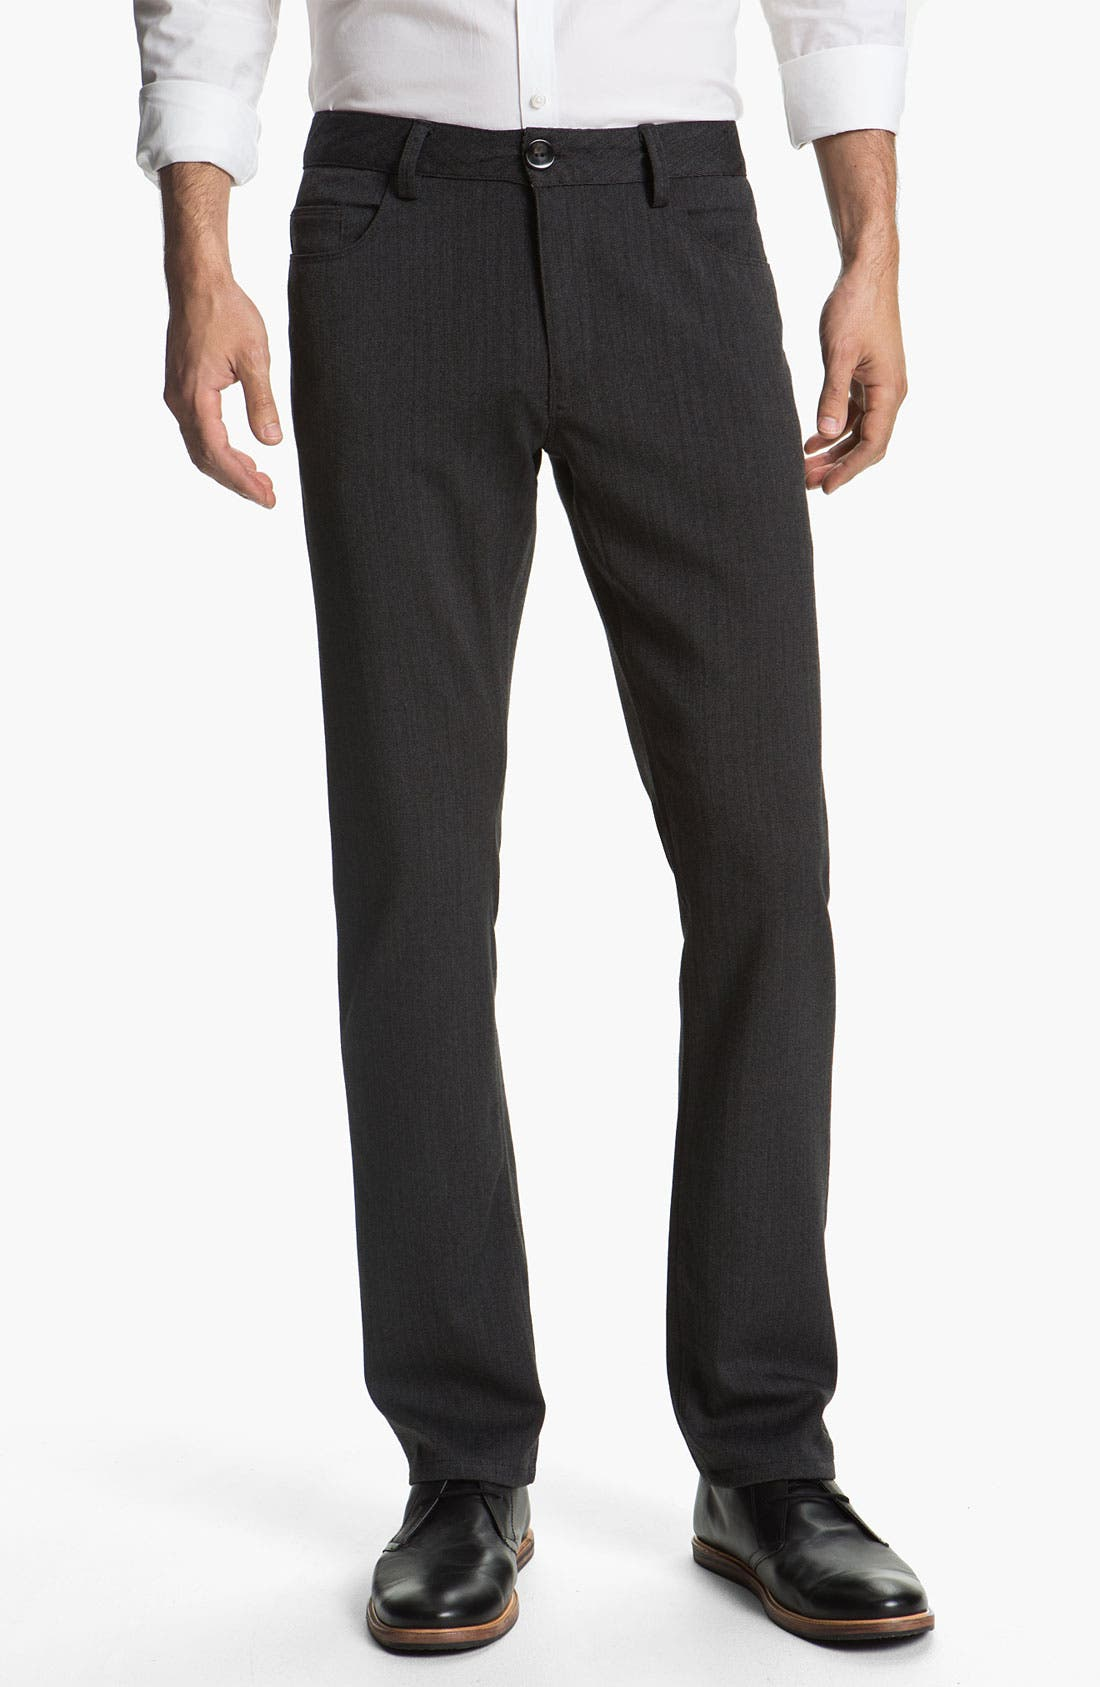 Alternate Image 1 Selected - Alex Maine Flat Front Herringbone Pants